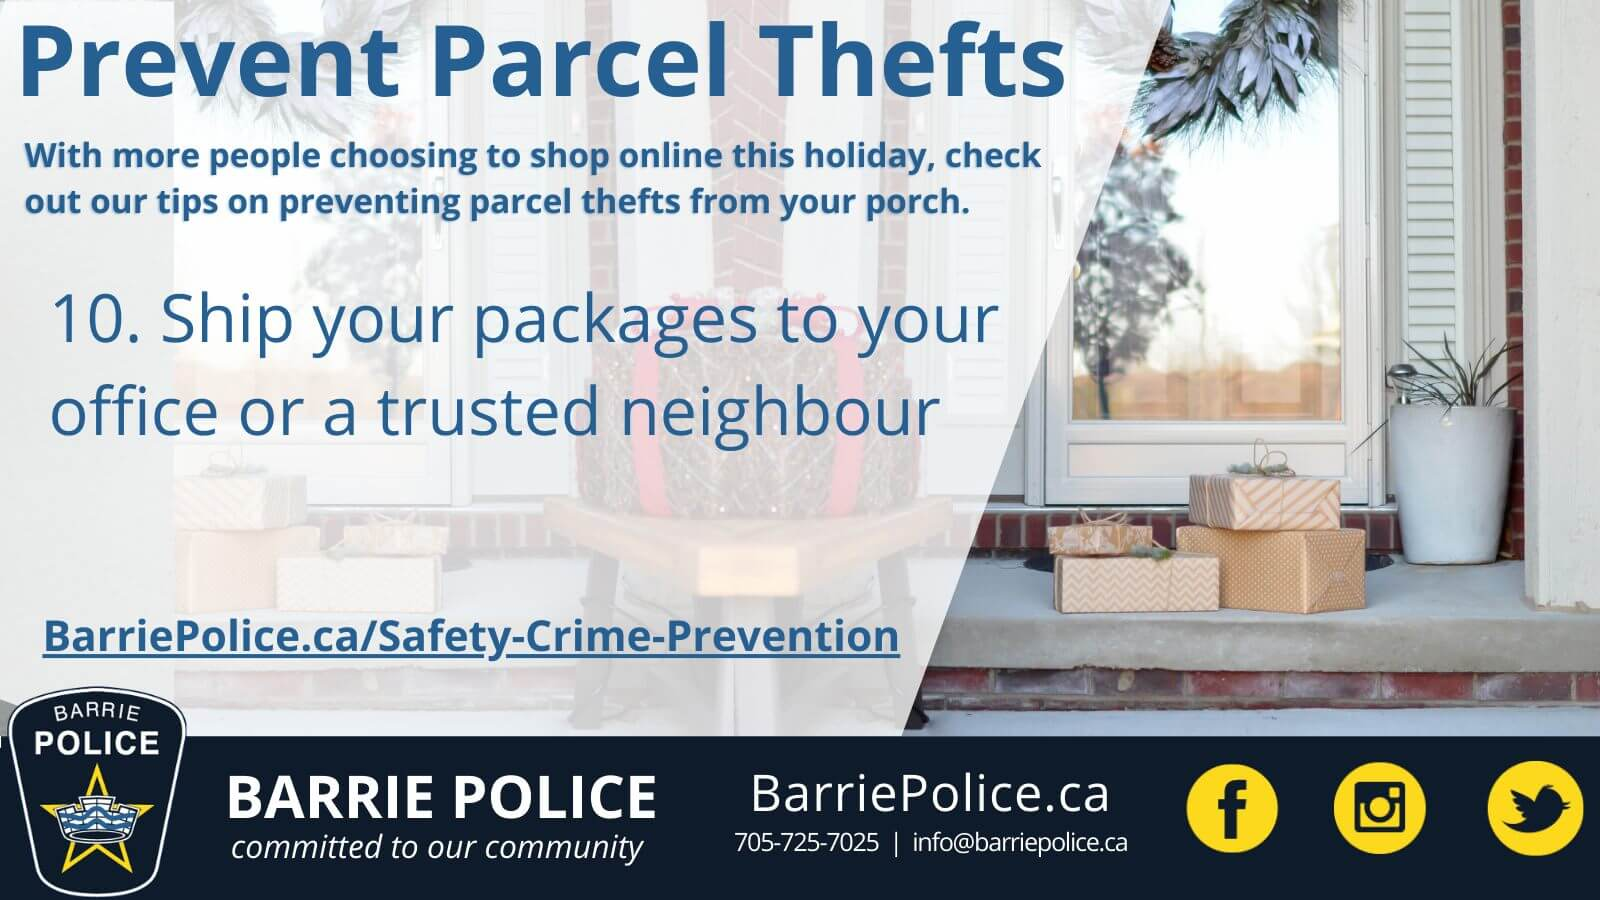 Prevent Parcel Thefts Tip 10: Ship parcels to a trusted neighbour or your office